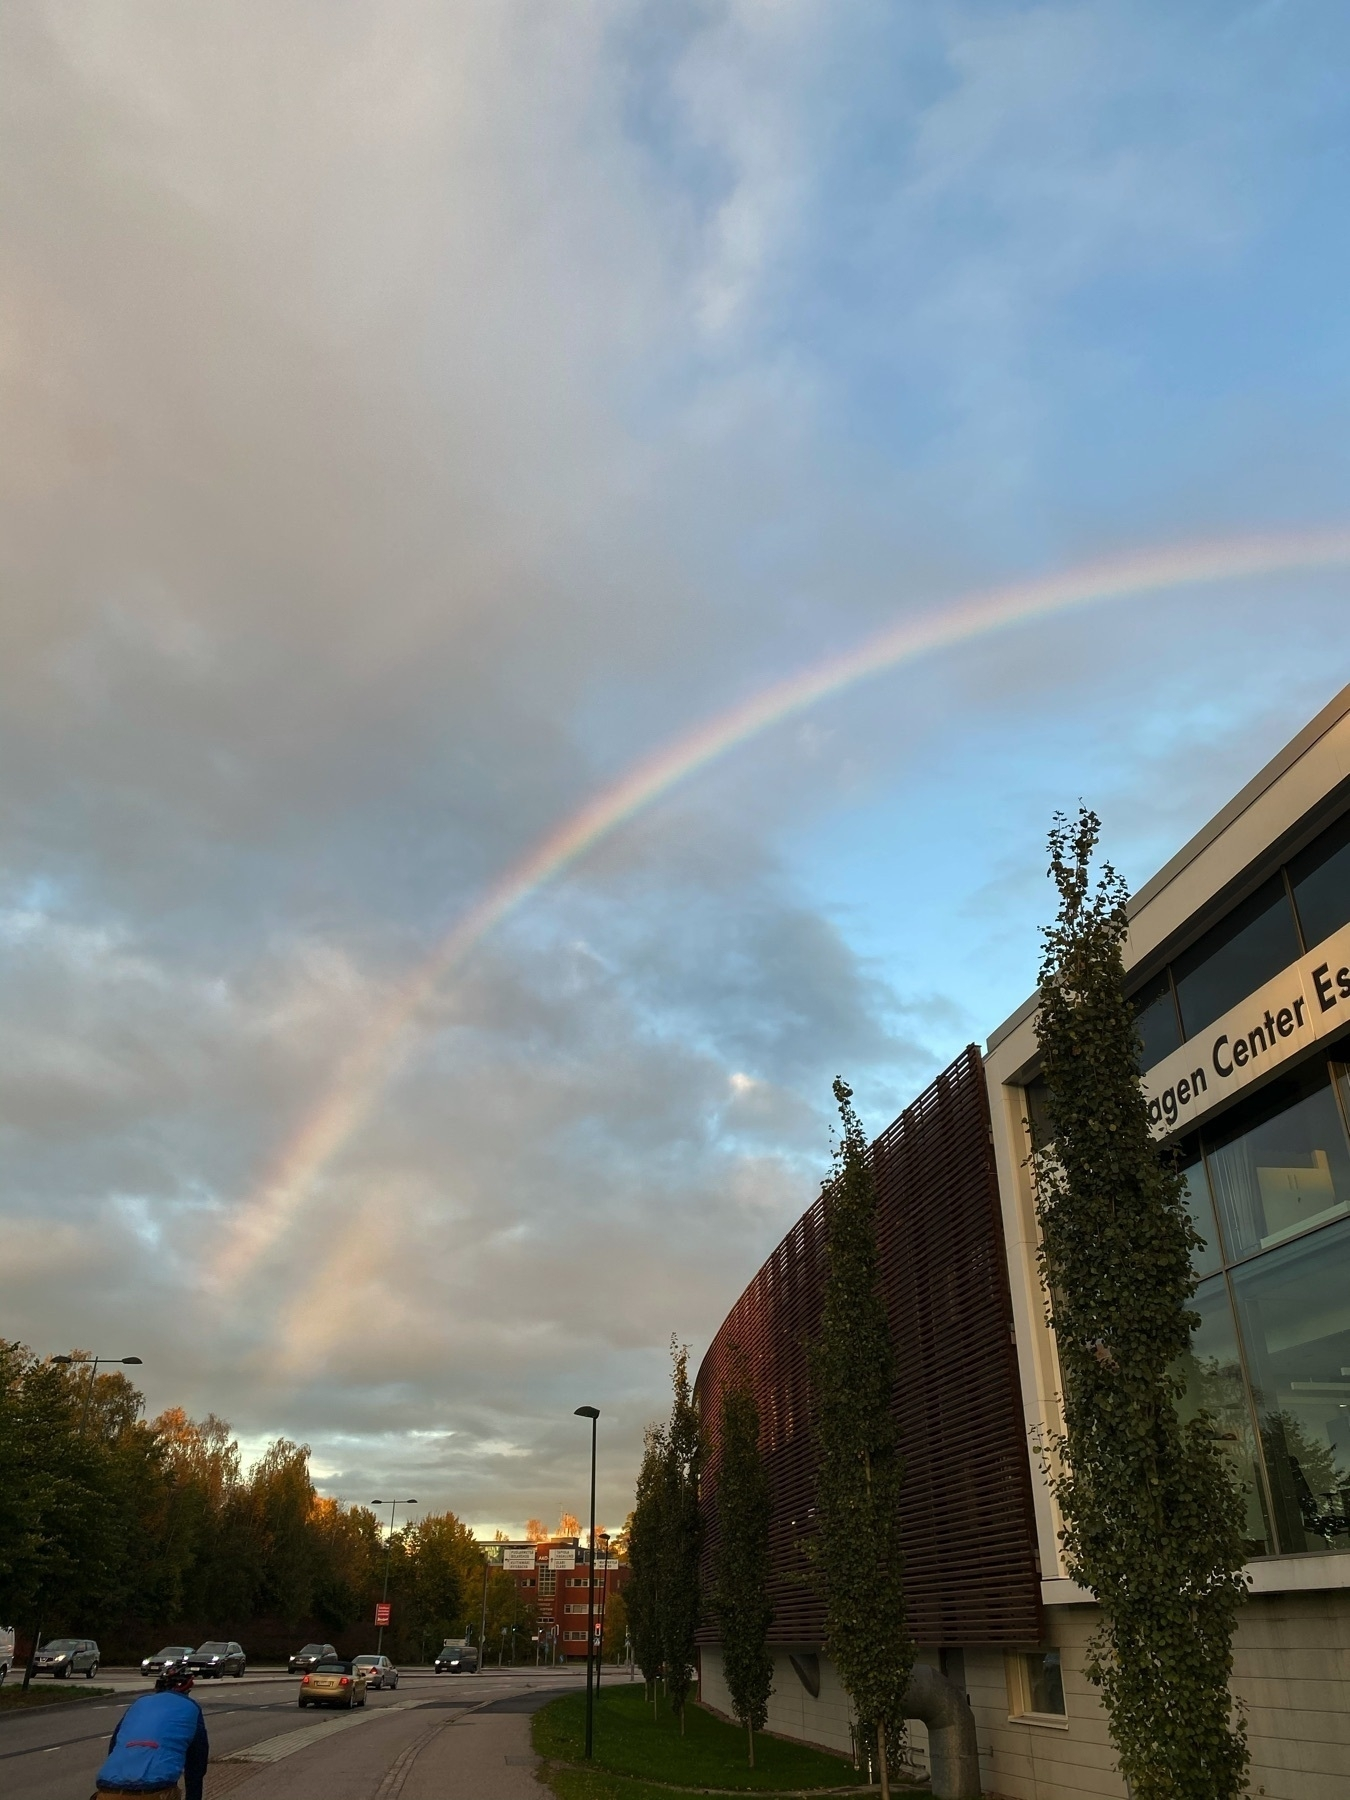 Car shop and multiple partial rainbows on sky